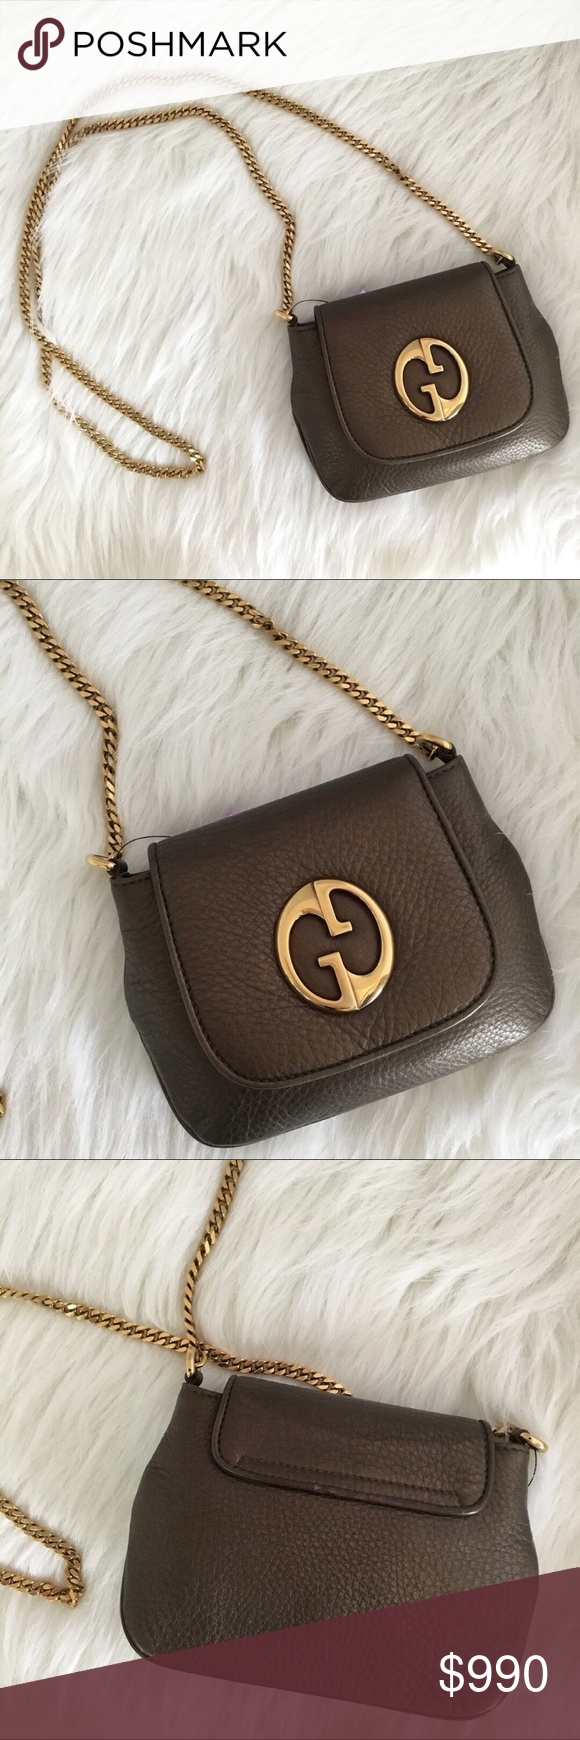 62fe4f441f0e0f Gucci cross body gold chain bag purse🍕❤ Vintage Gucci crossbody bag. 1973  vintage Slight signs of wear inside to suede but otherwise bag is in  stunning ...